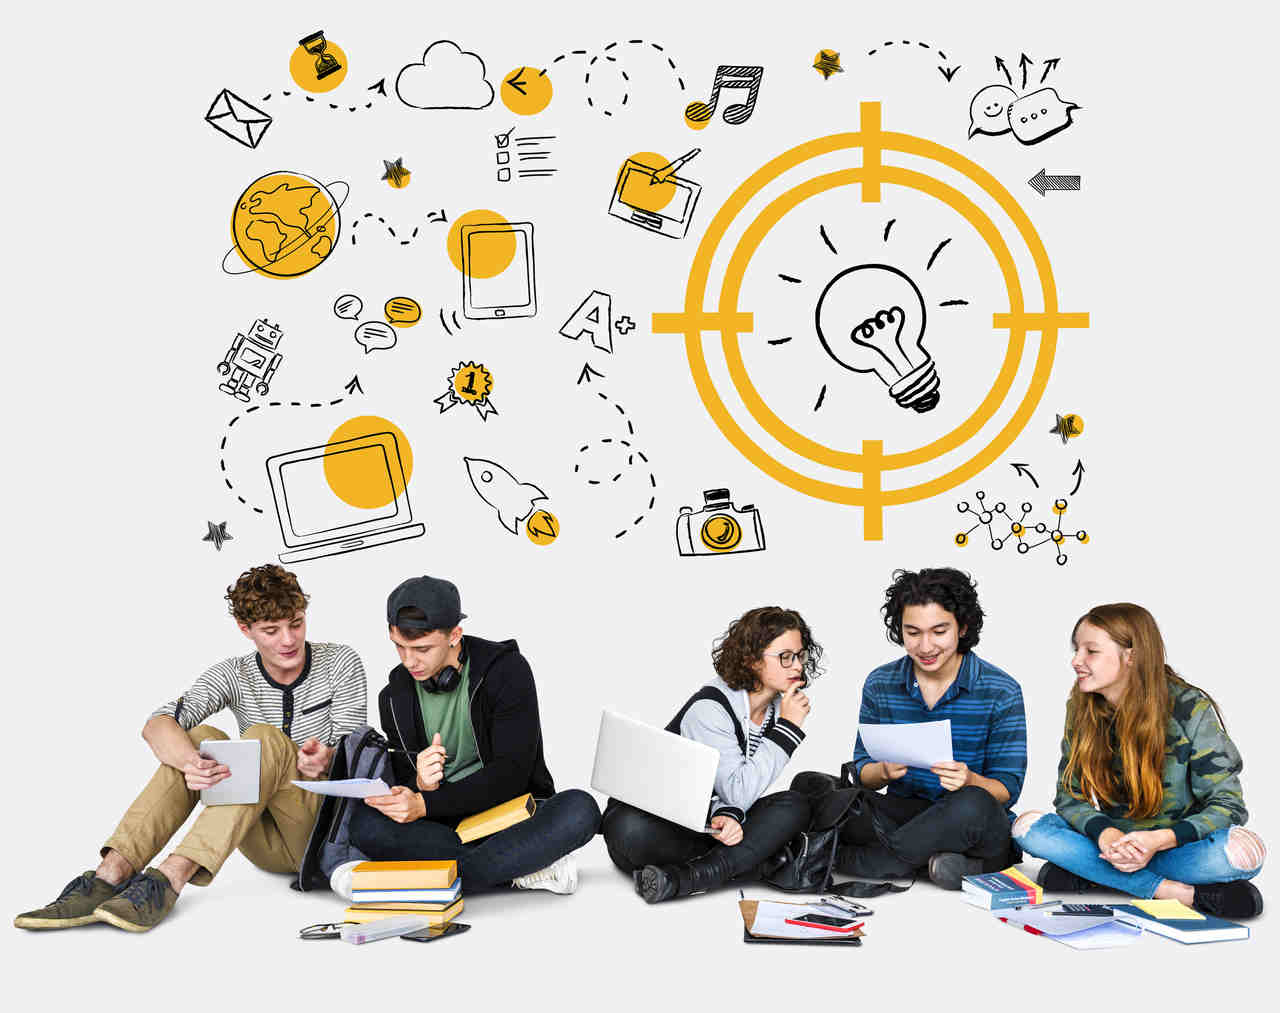 Students sitting on floor with yellow and black homework icons overhead